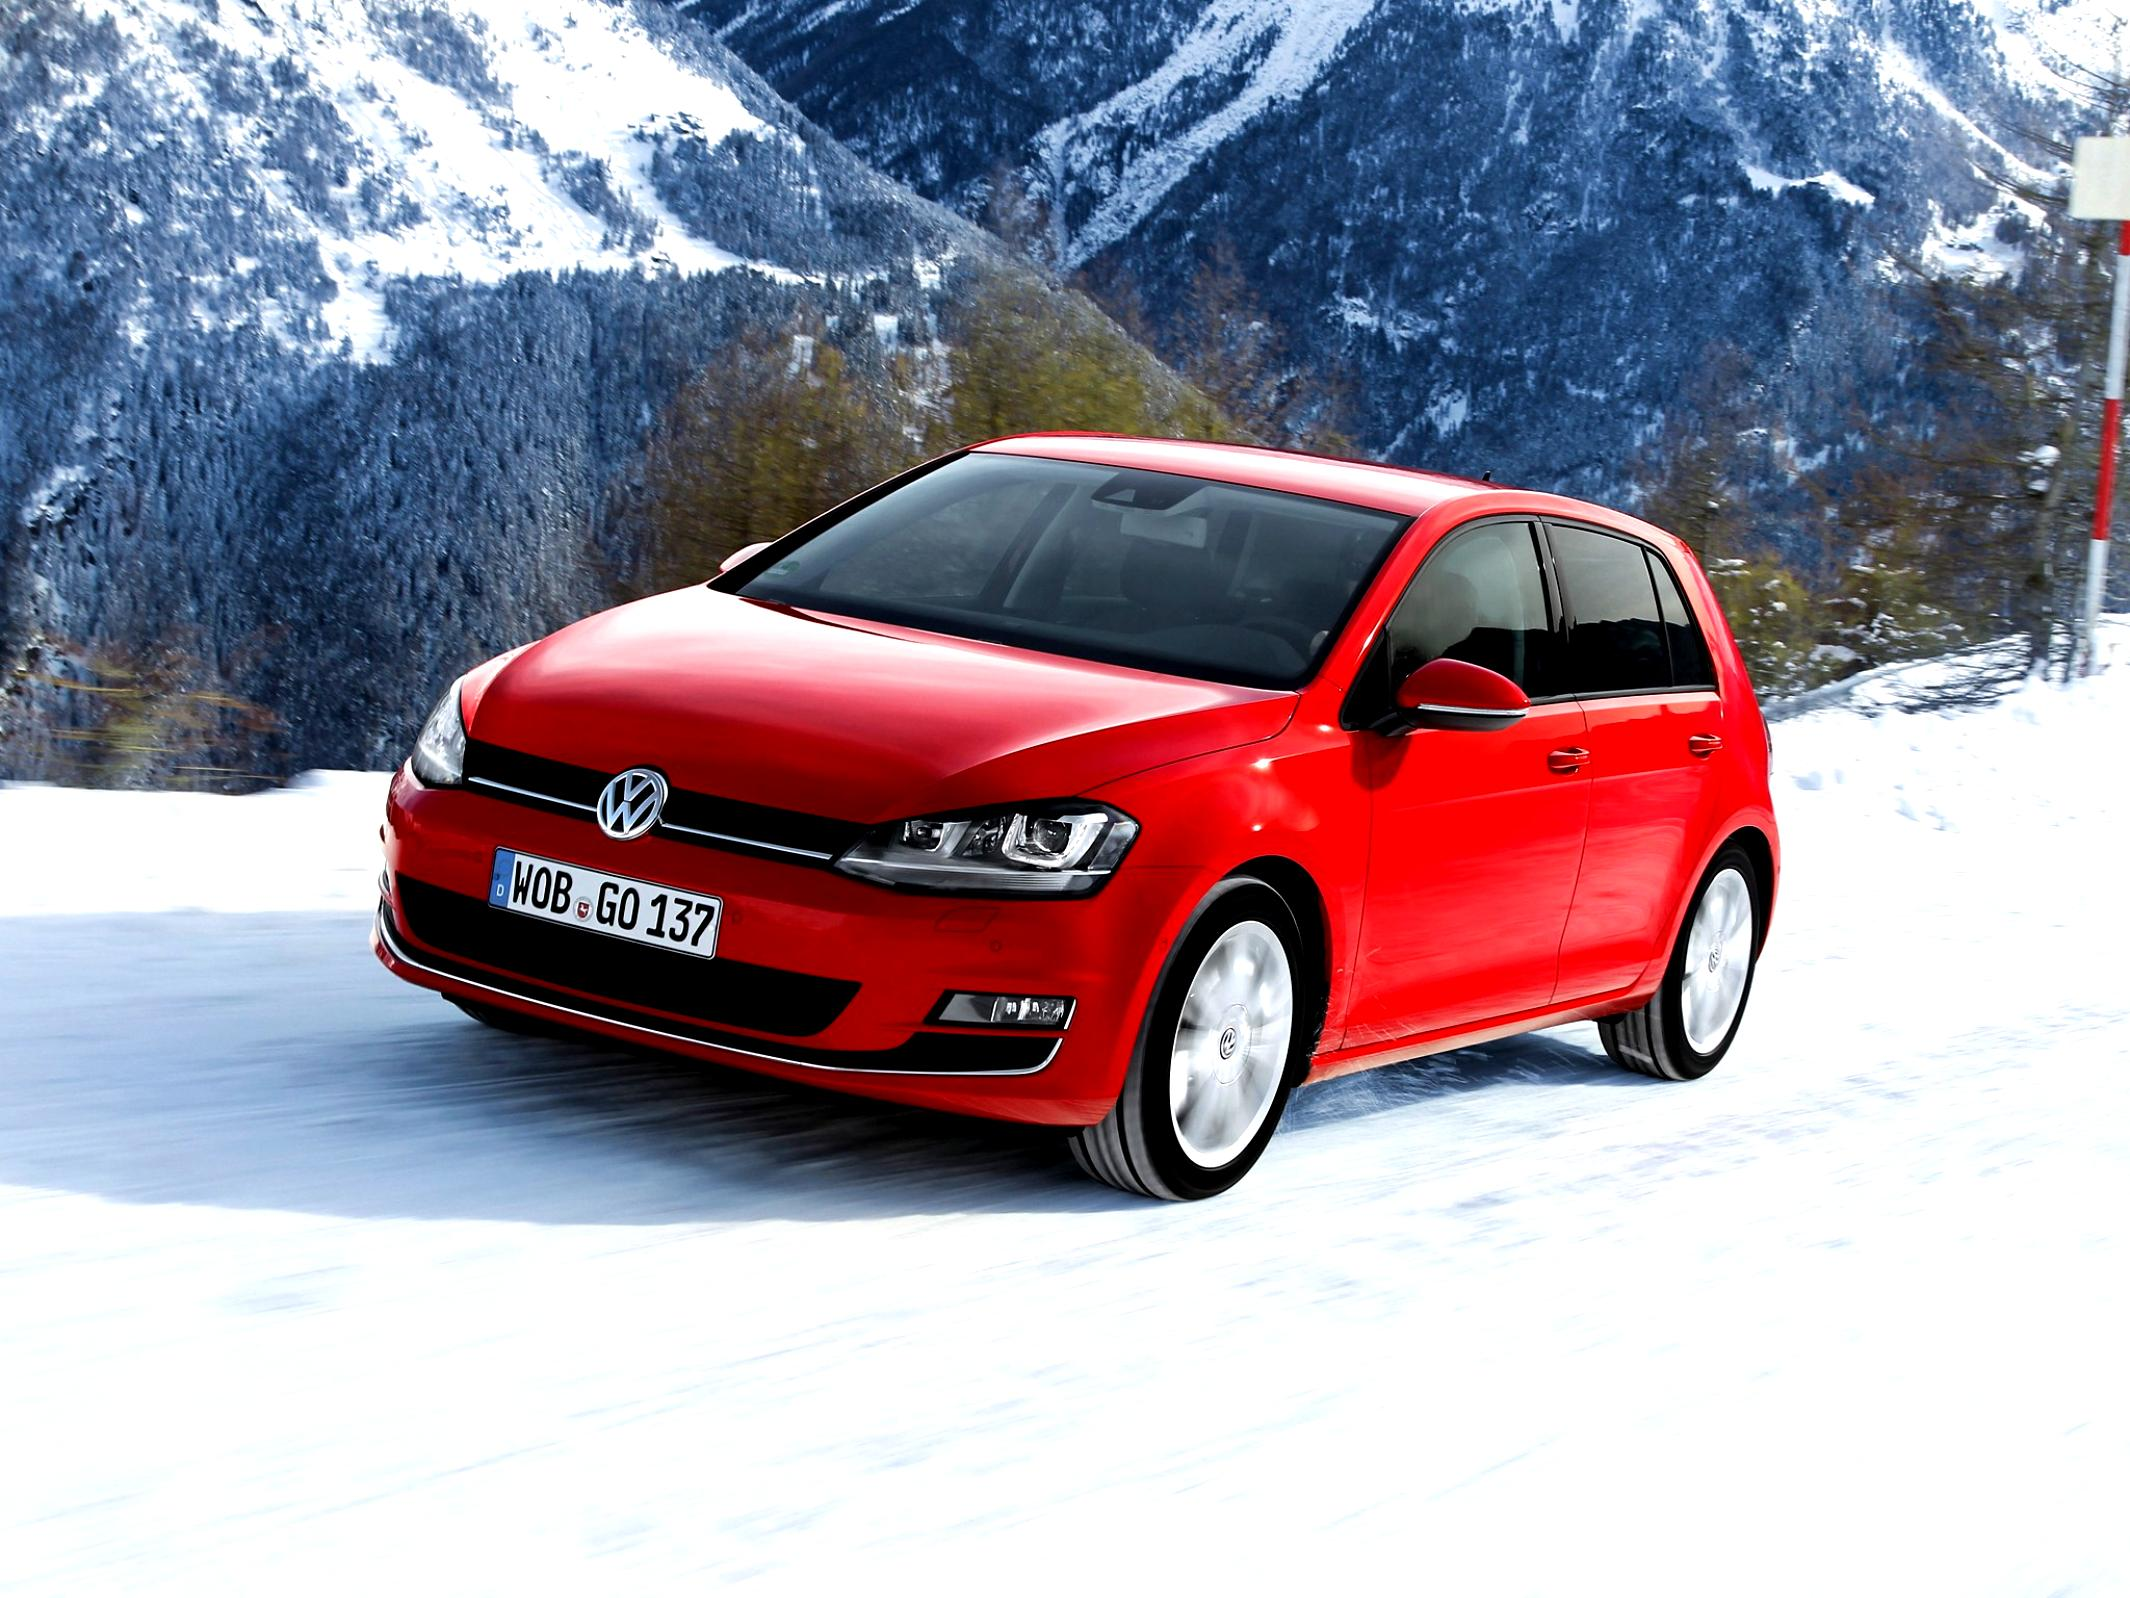 Volkswagen Golf VII 5 Doors 2012 #34